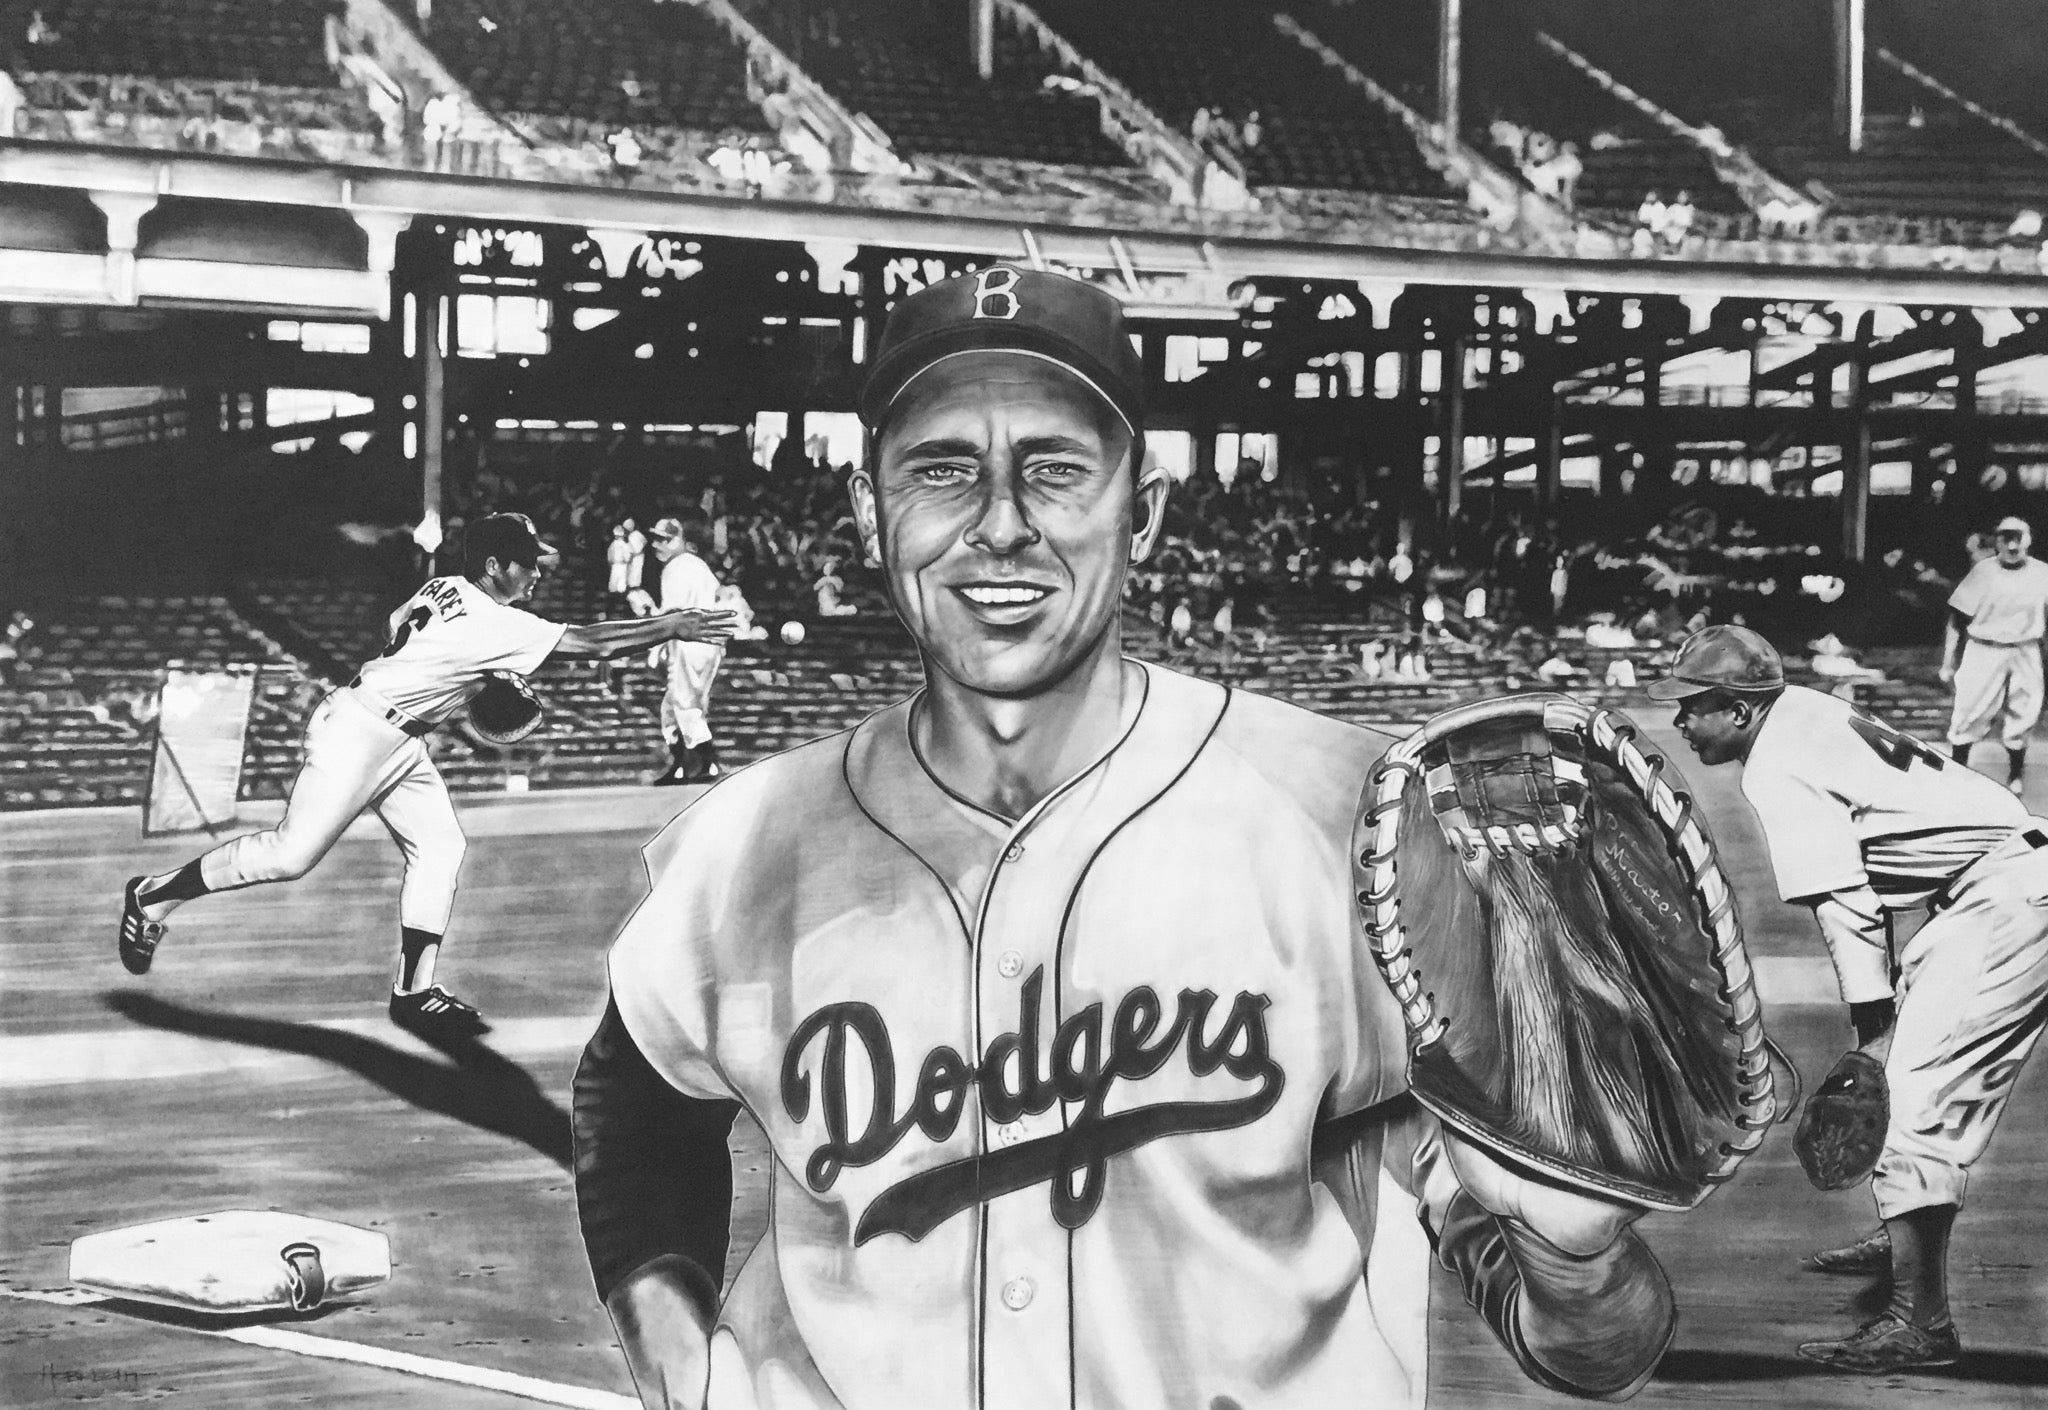 The All-Time Dodgers 1st Base Gil Hodges Painting by Dave Hobrecht